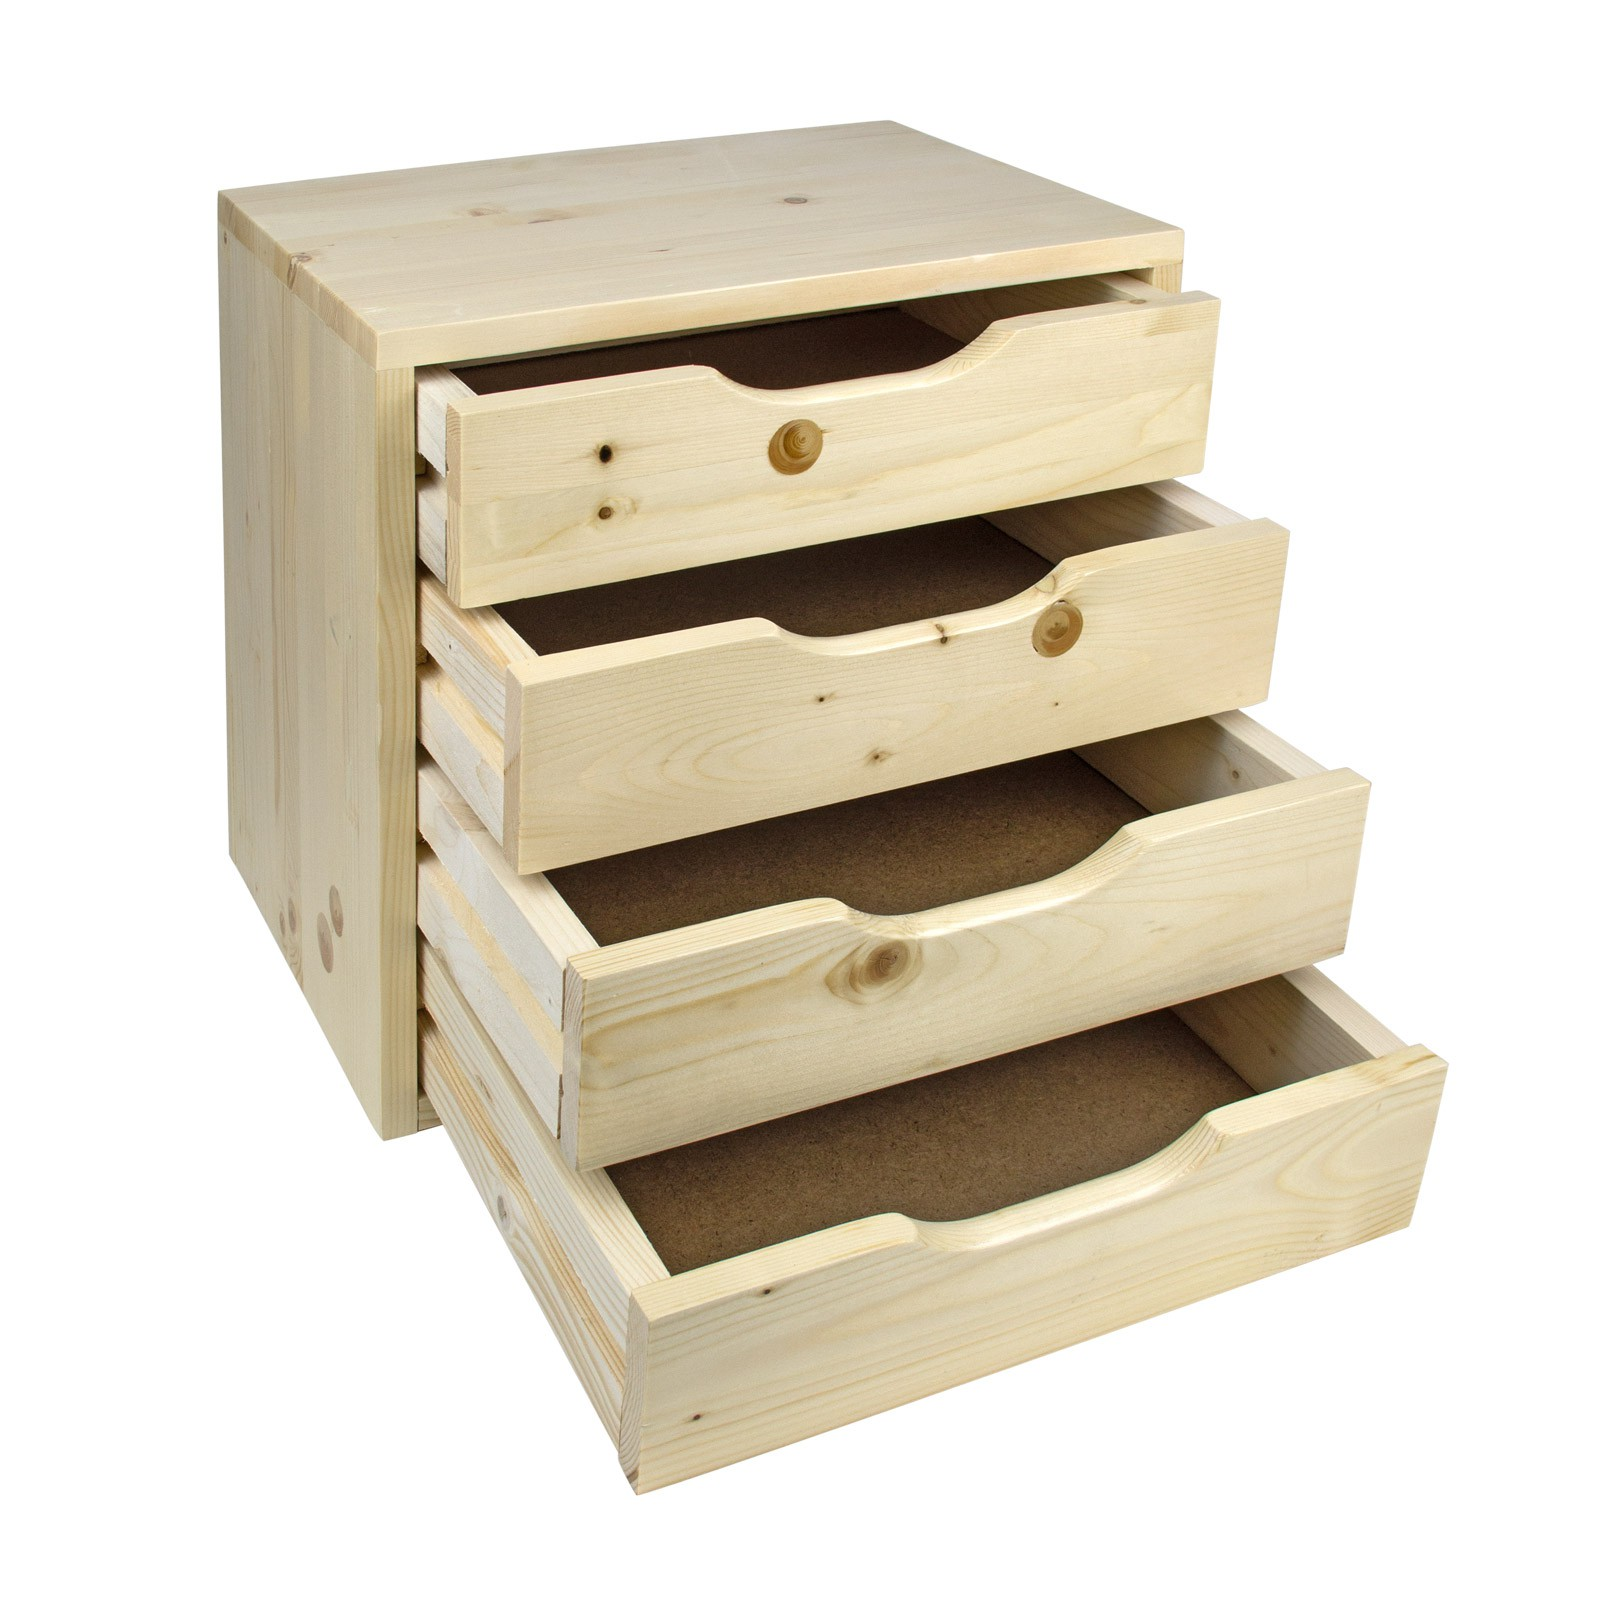 holz schubladenbox sb 3 4 5 6 schubladen ablagebox. Black Bedroom Furniture Sets. Home Design Ideas